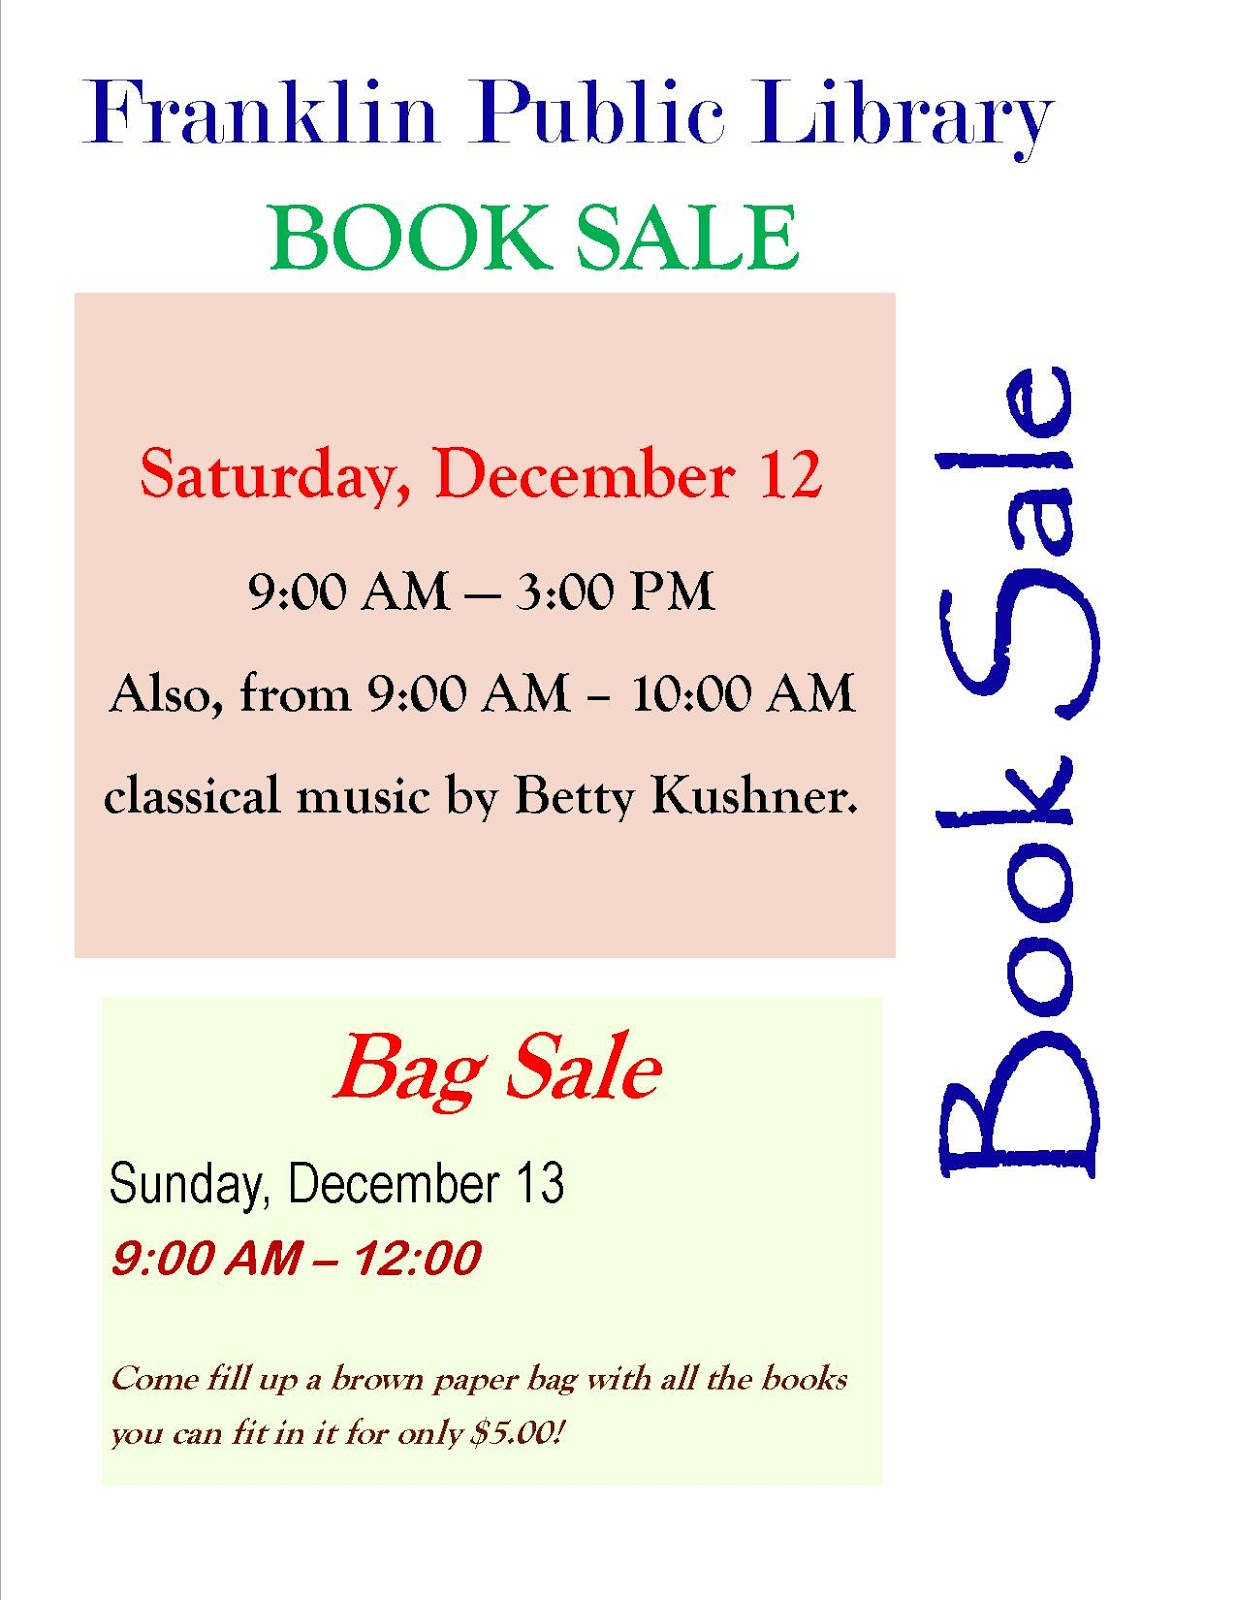 Library book and bag sale 12/12-12/13